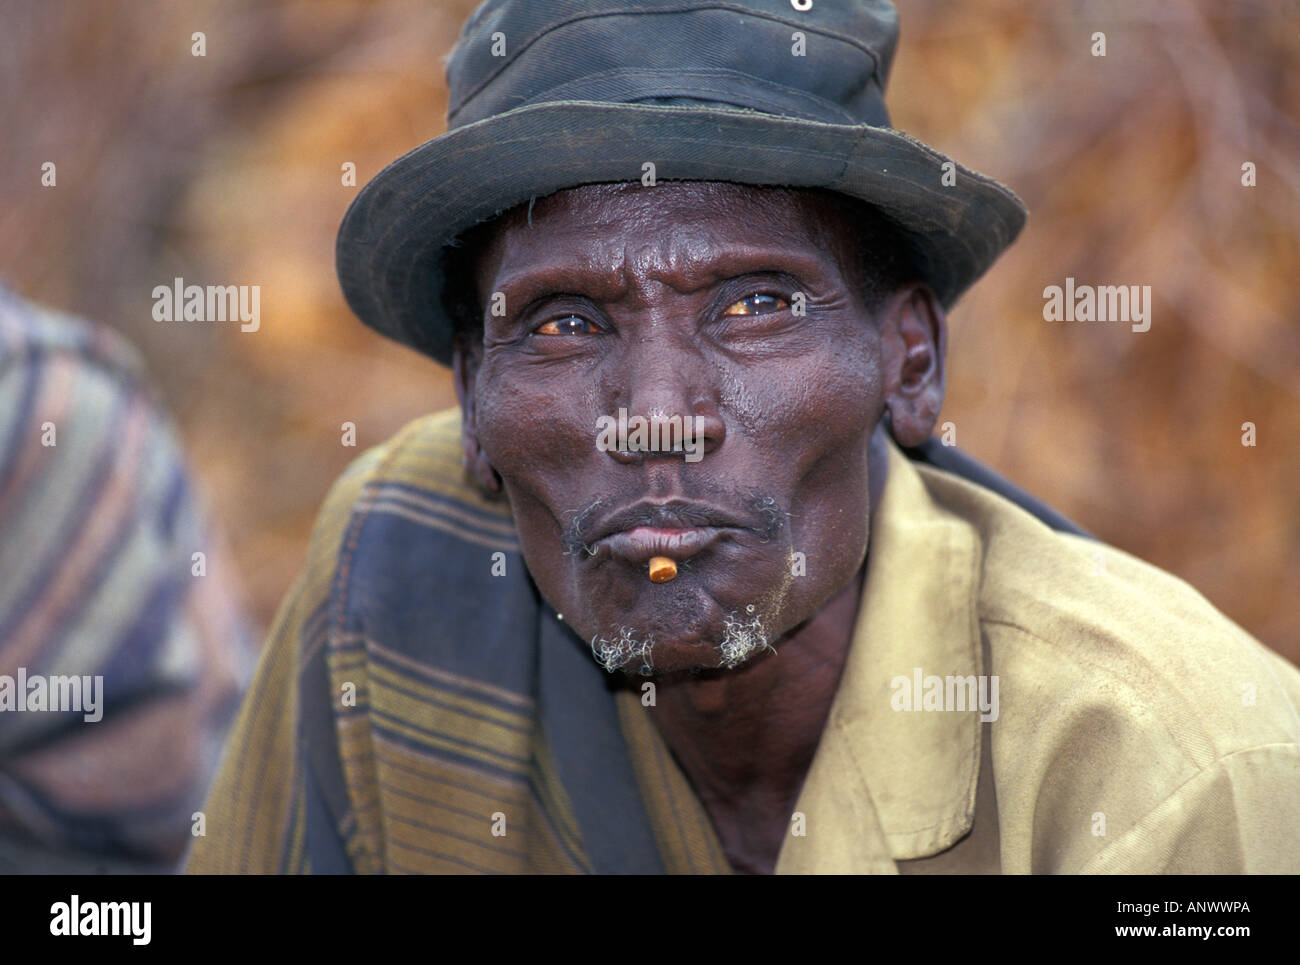 A Bume elder in his village in the Omo region of Ethiopia, Africa. Stock Photo